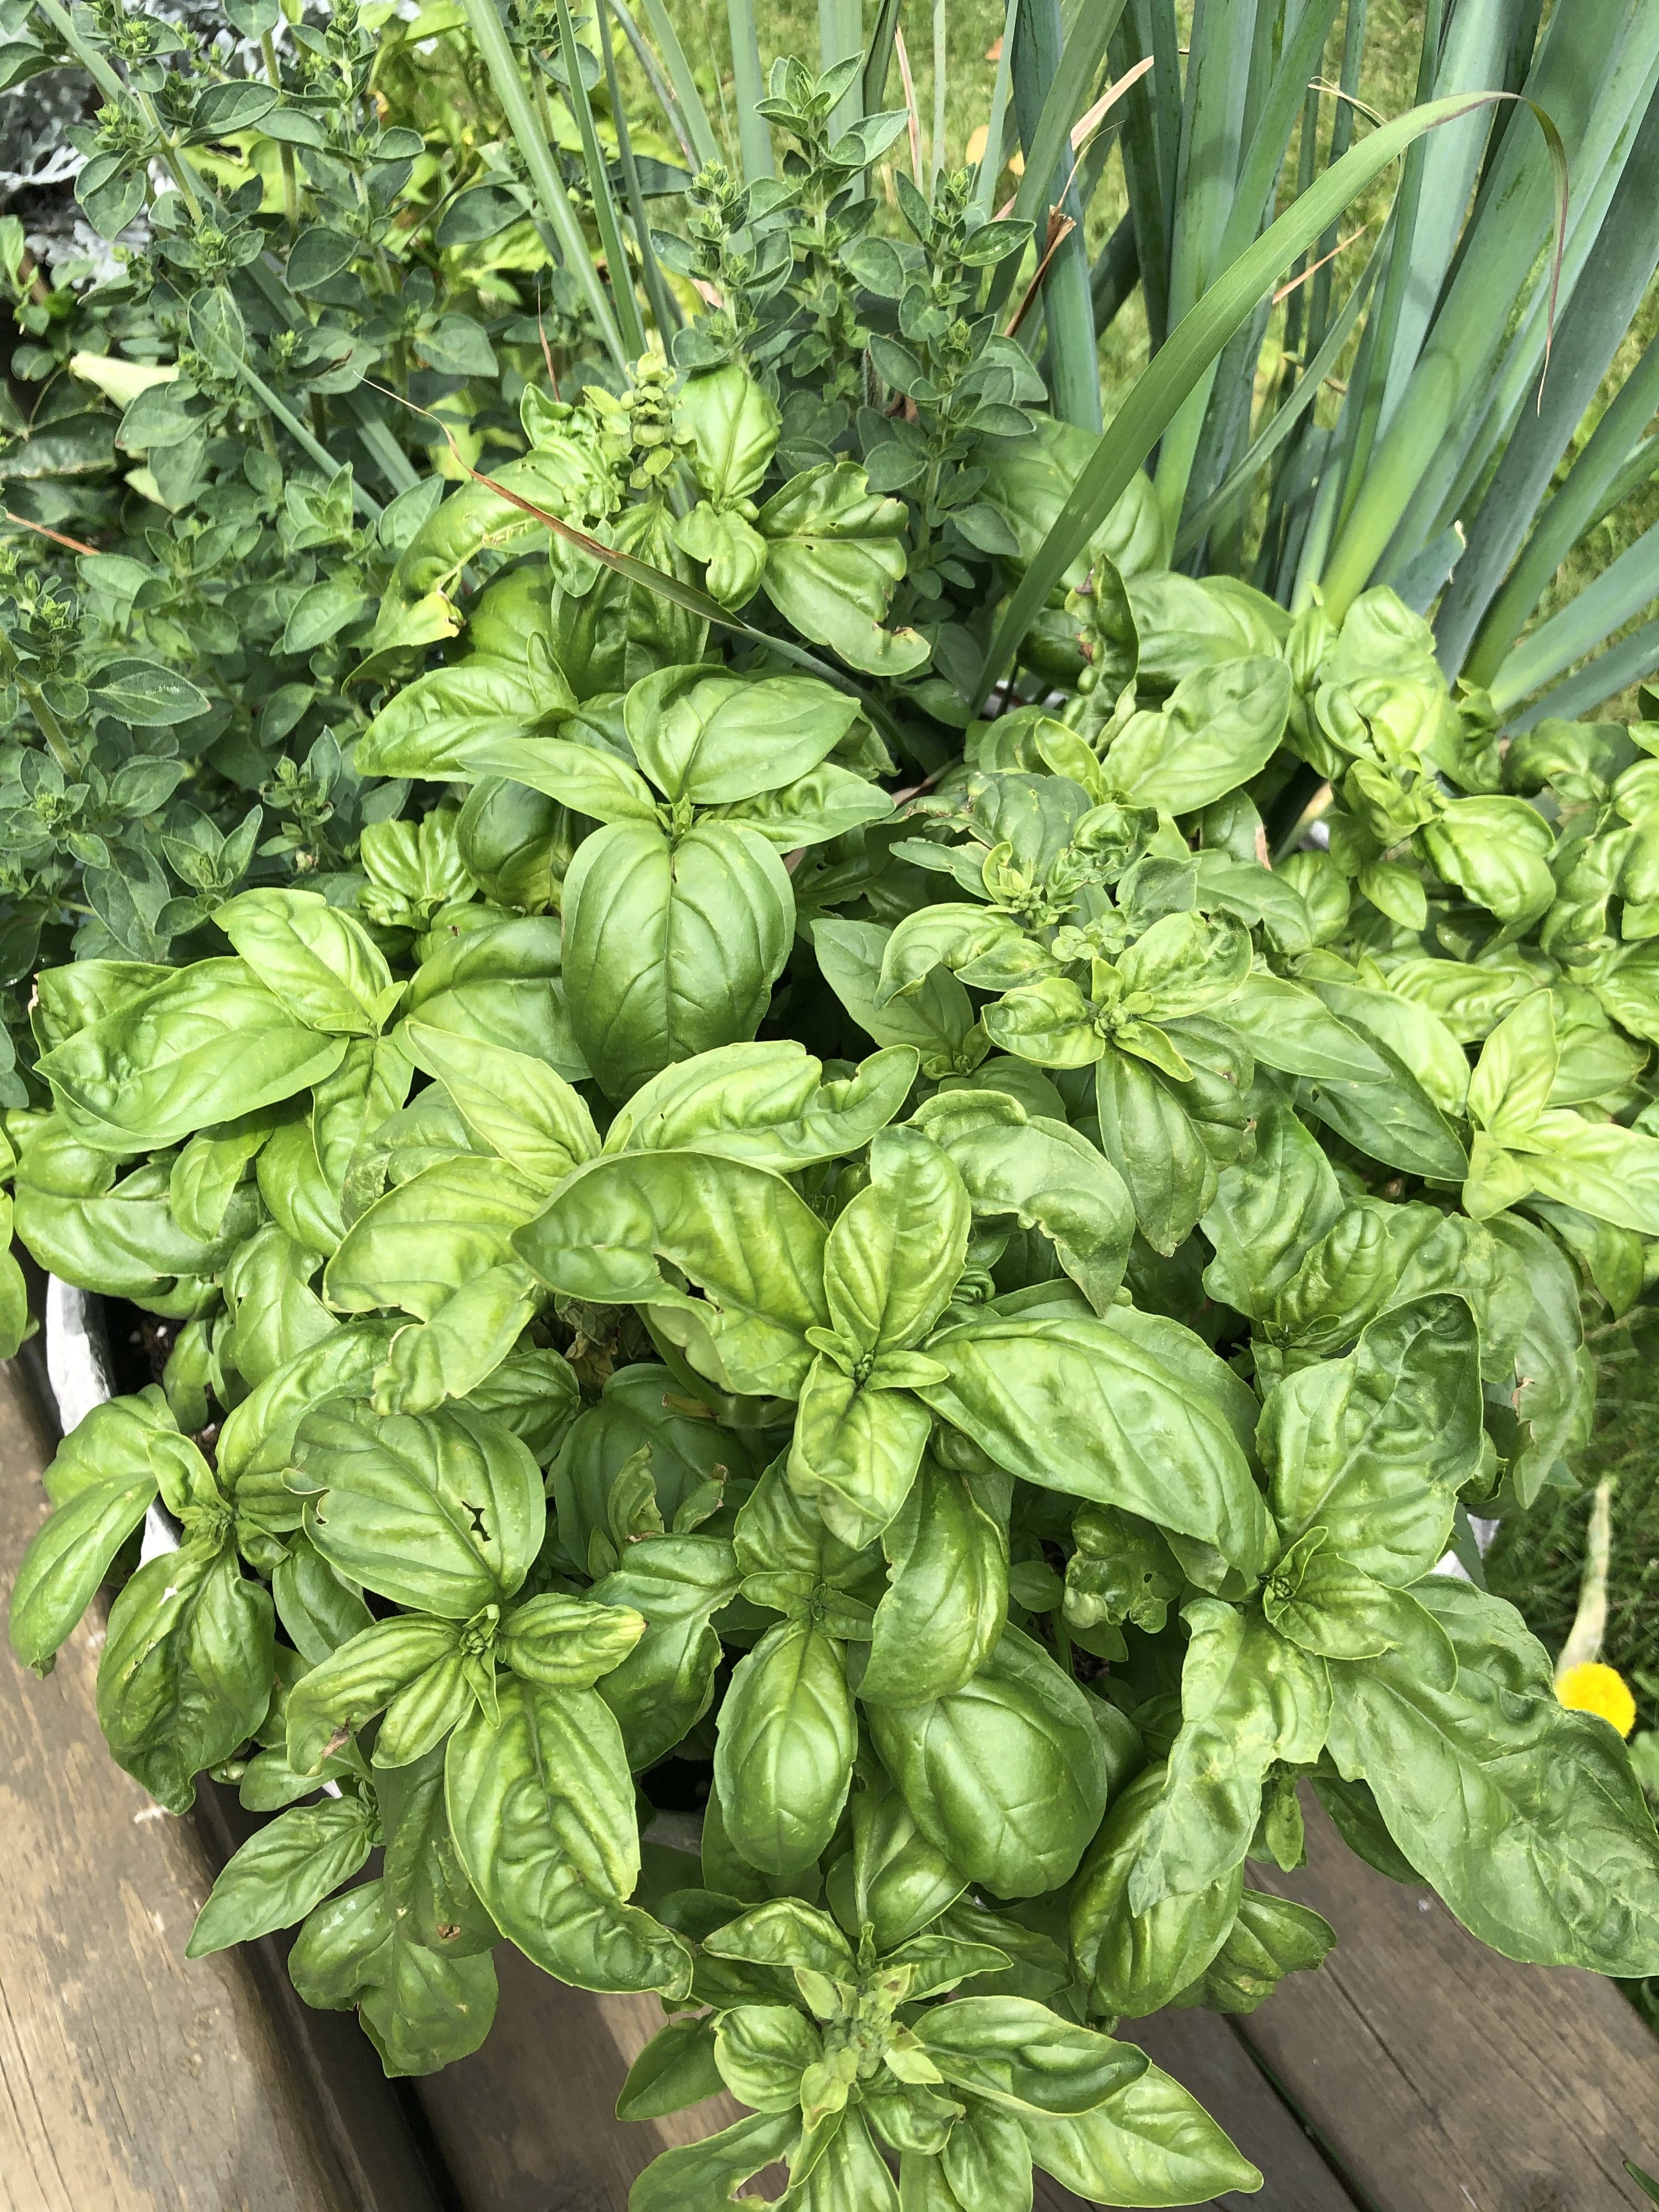 fresh basil in a pot with other herbs